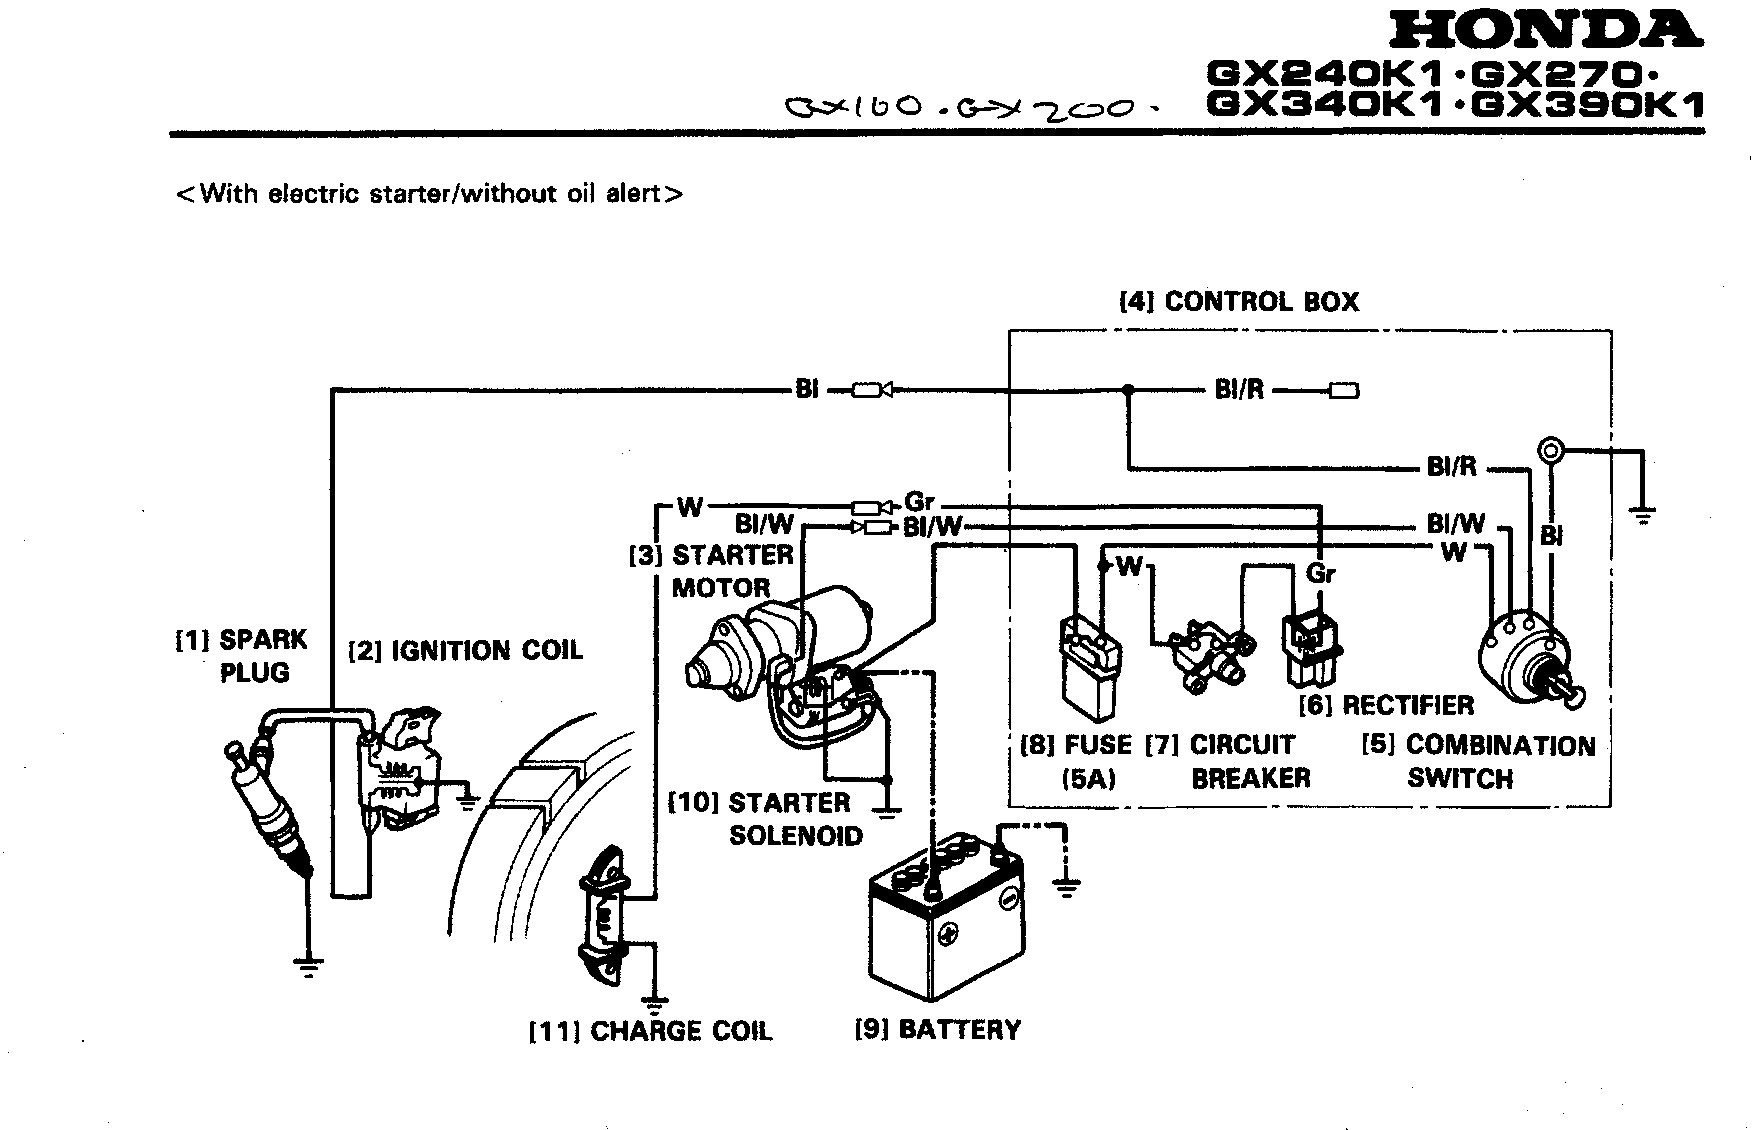 WRG-4838] John Deere 111 Wiring Diagram Pdf on